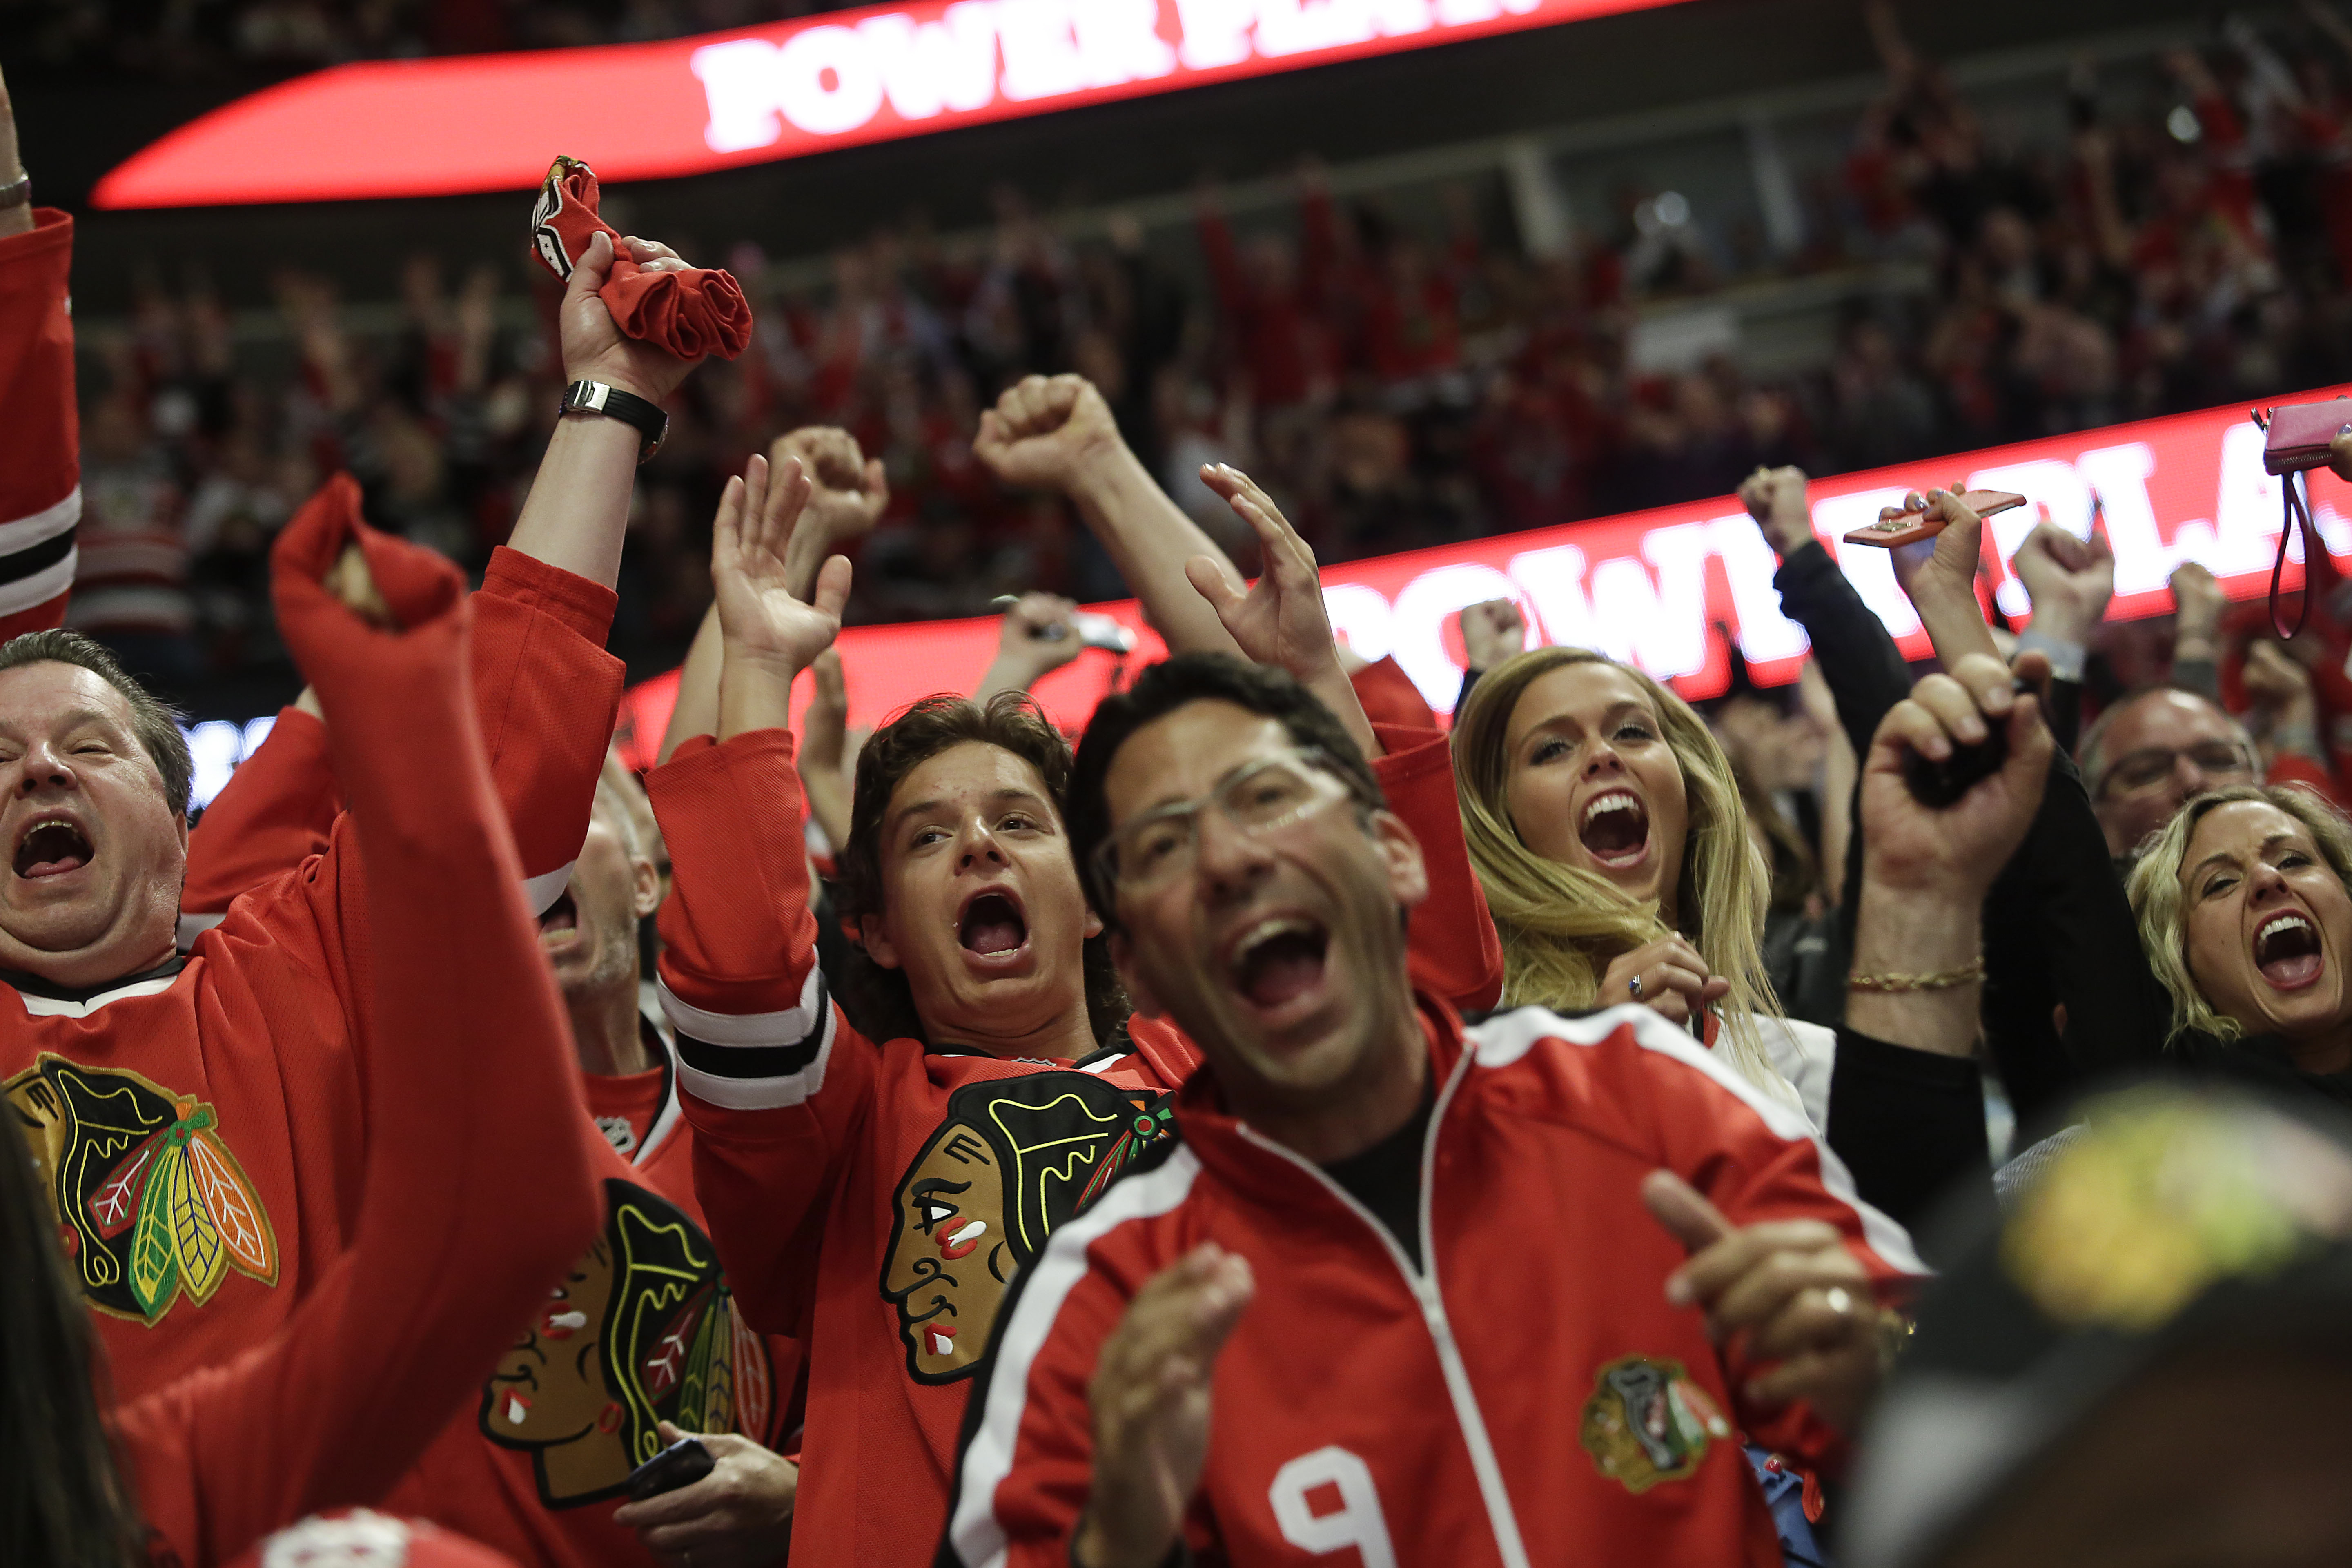 Chicago Blackhawks fans, reacting after the team scored a goal in the first period of Game Three against the Lightning, will be in rare form Monday night, when the Blackhawks have a chance to clinch the Stanley Cup.